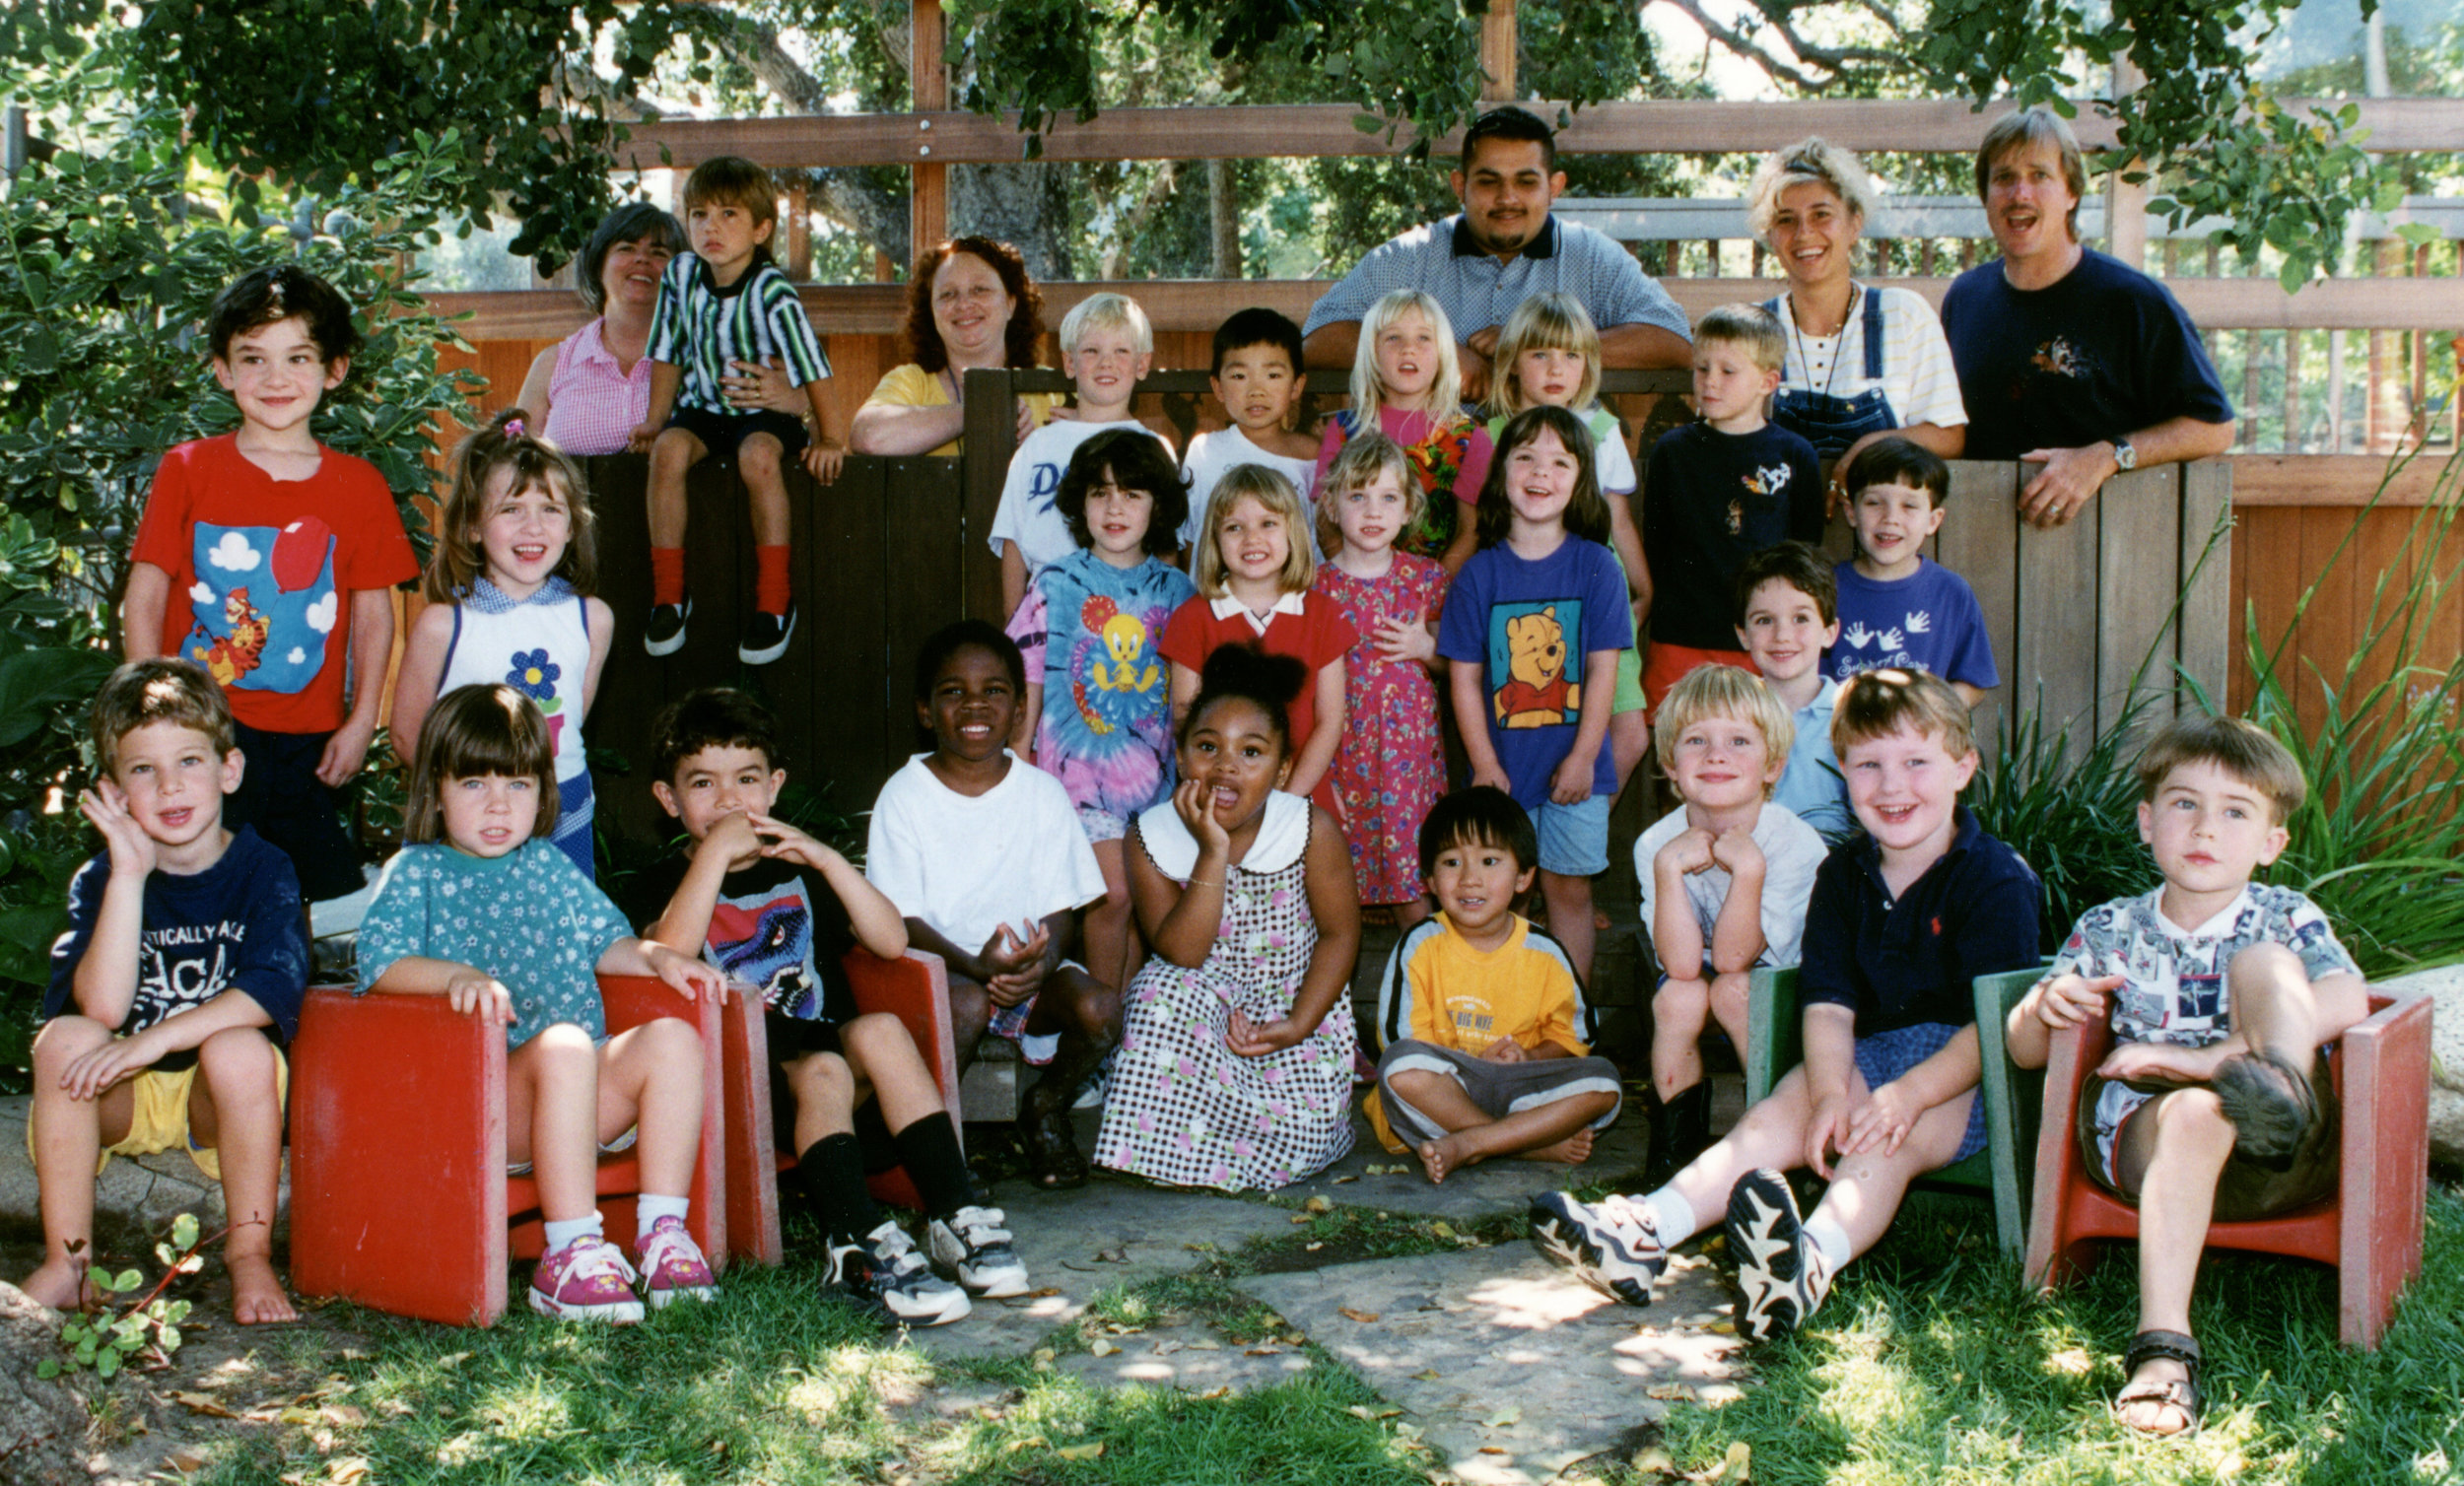 1998 Preschool Class Photo.jpg